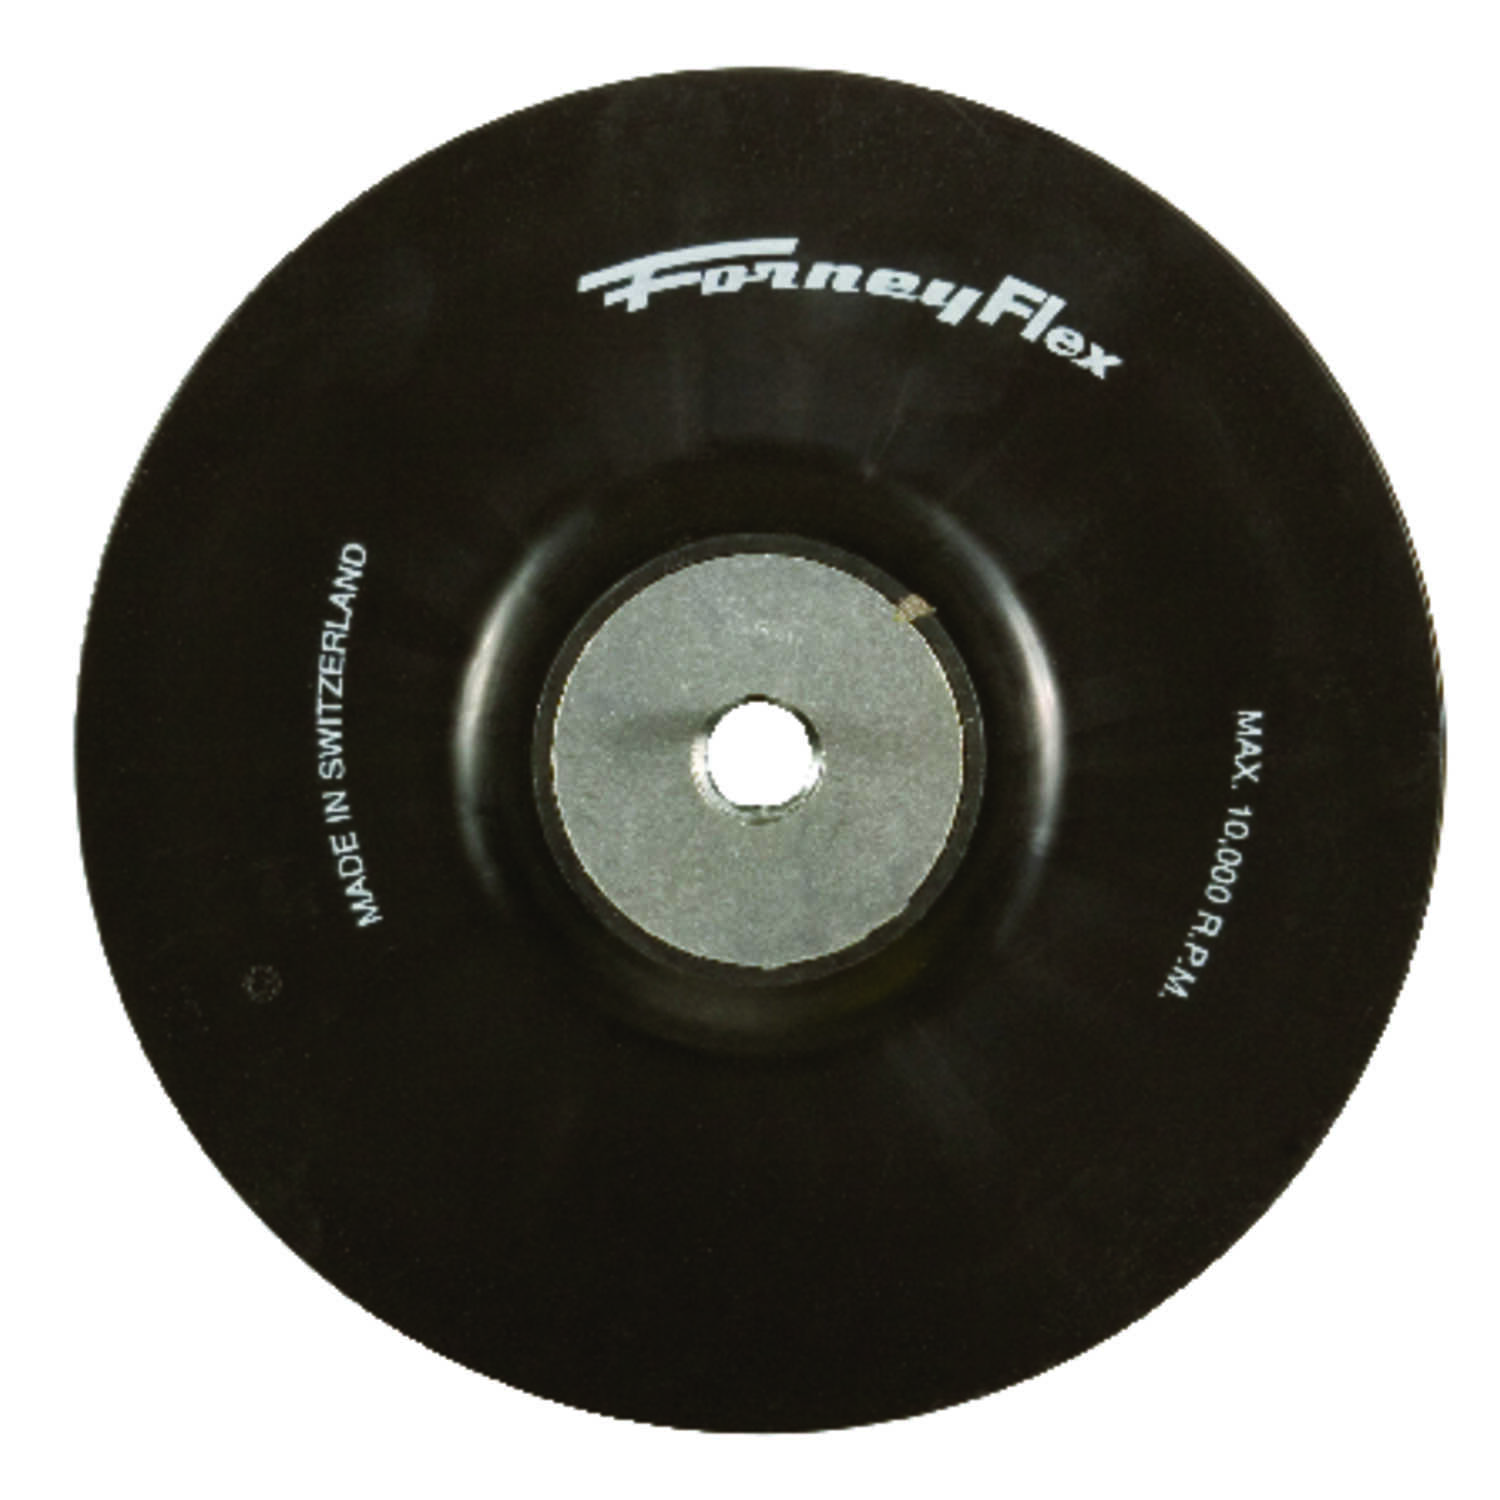 Forney  4-1/2 in. Dia. Rubber  Backing Pad  5/8 in.  20000 rpm 1 pc.